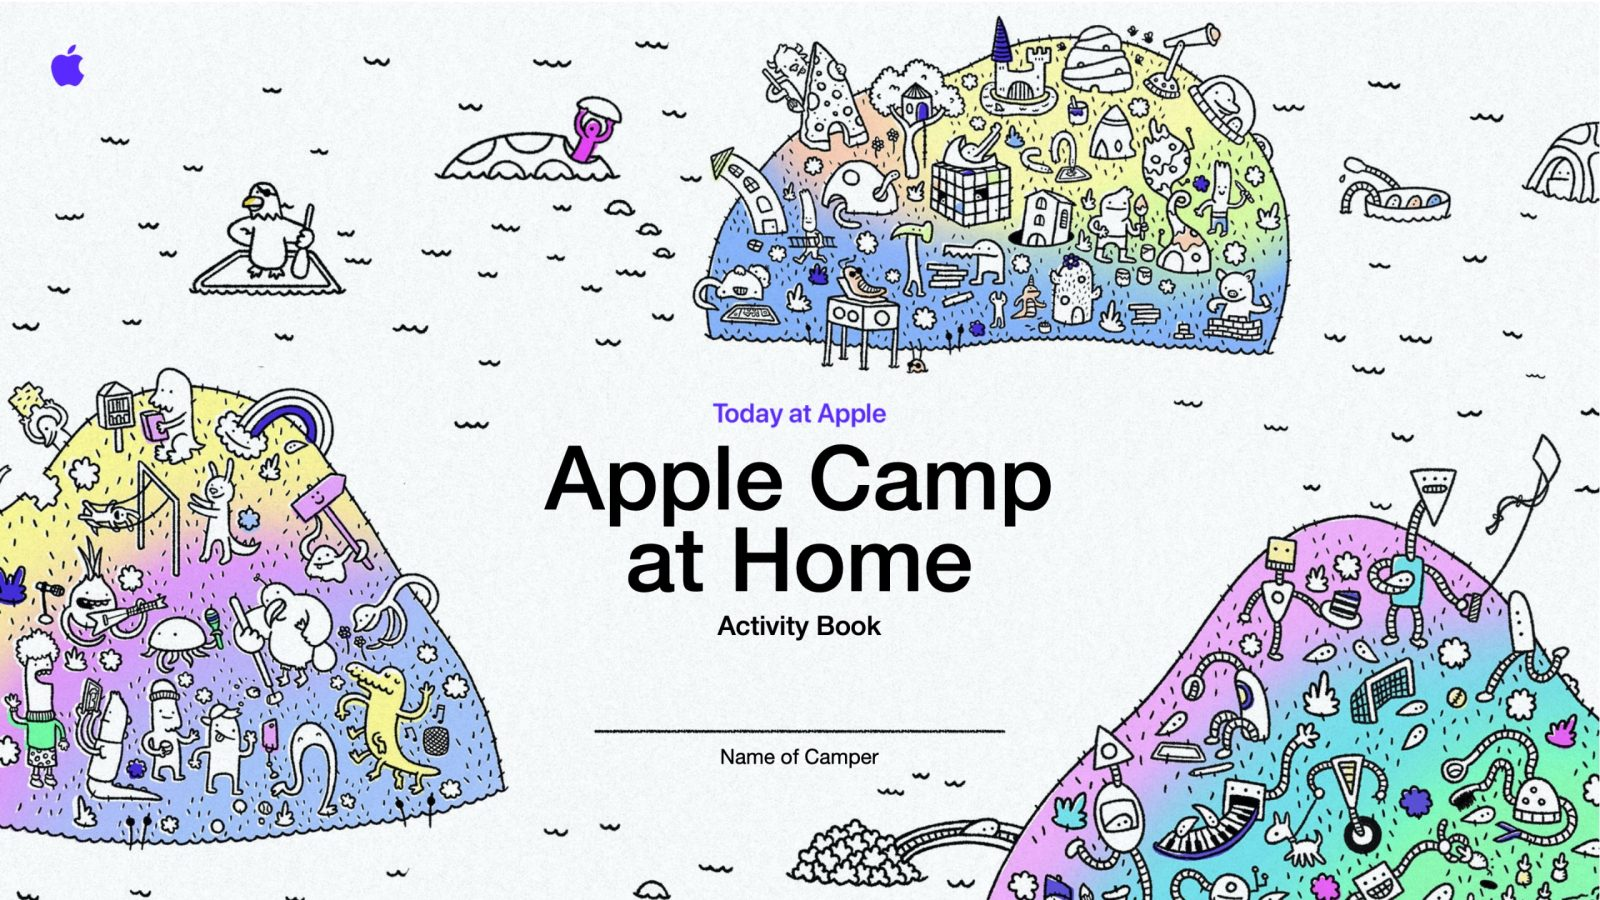 Apple Camp at Home registration now open with free creative Activity Book